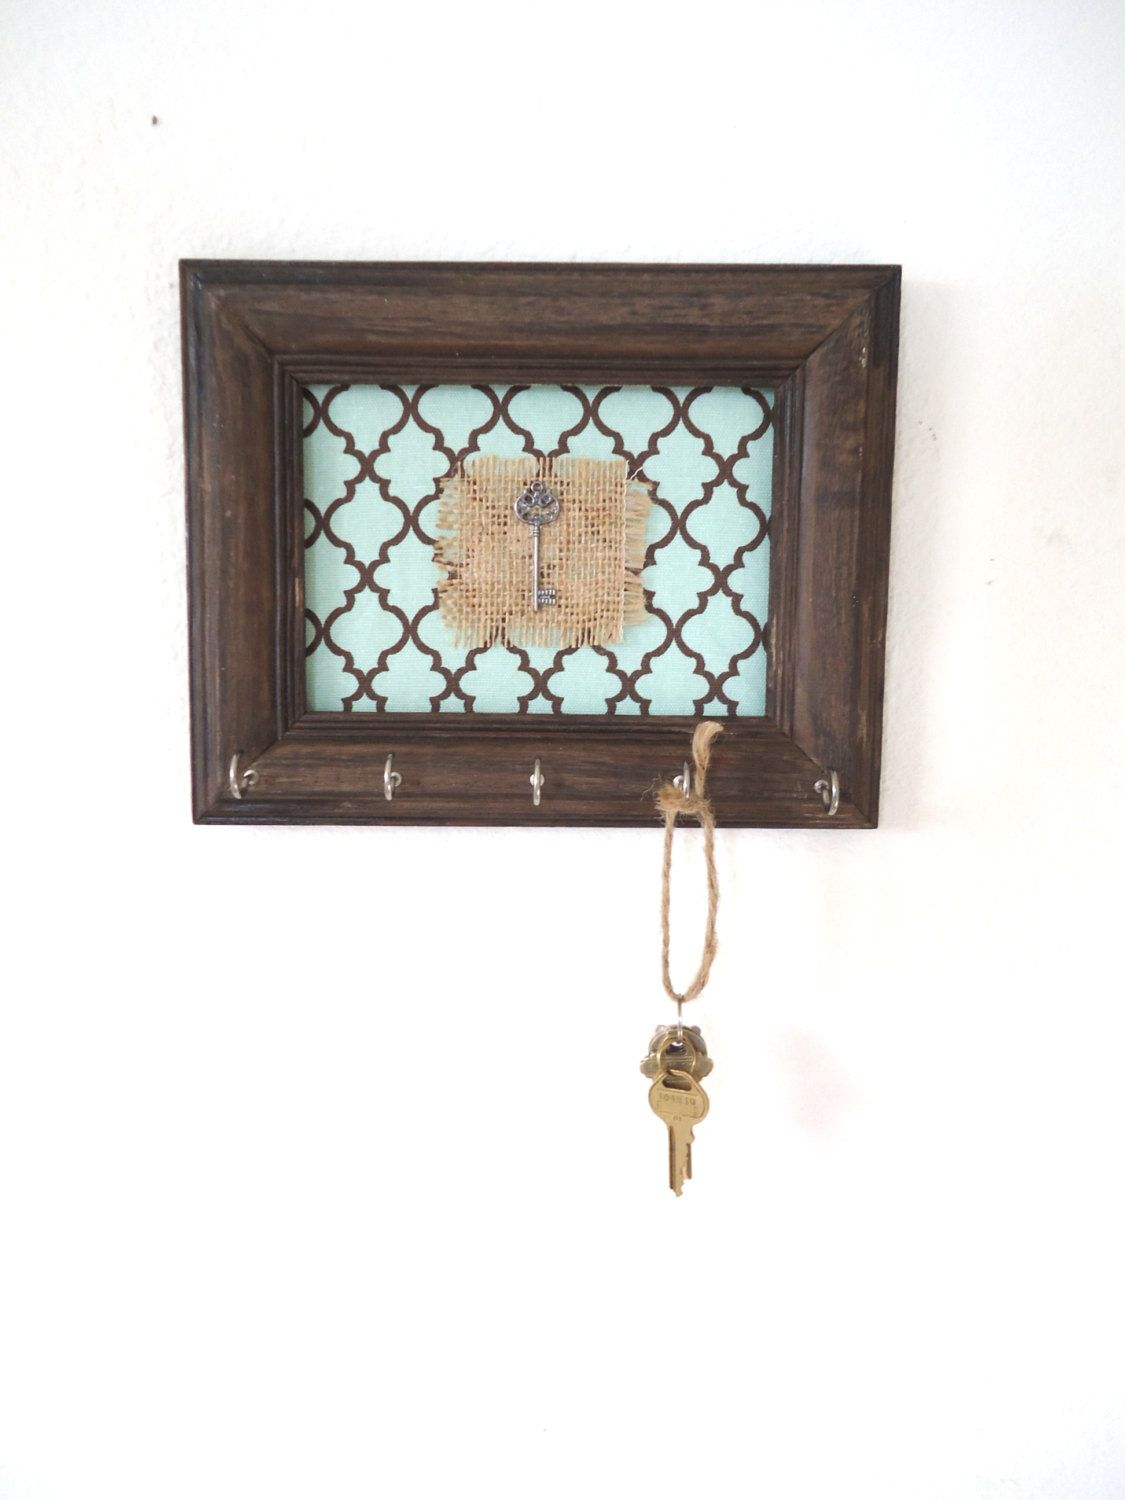 Key Holder Wall Hook Rack Organizer Vintage Frame French Country Home Decor  Dream Home  Home